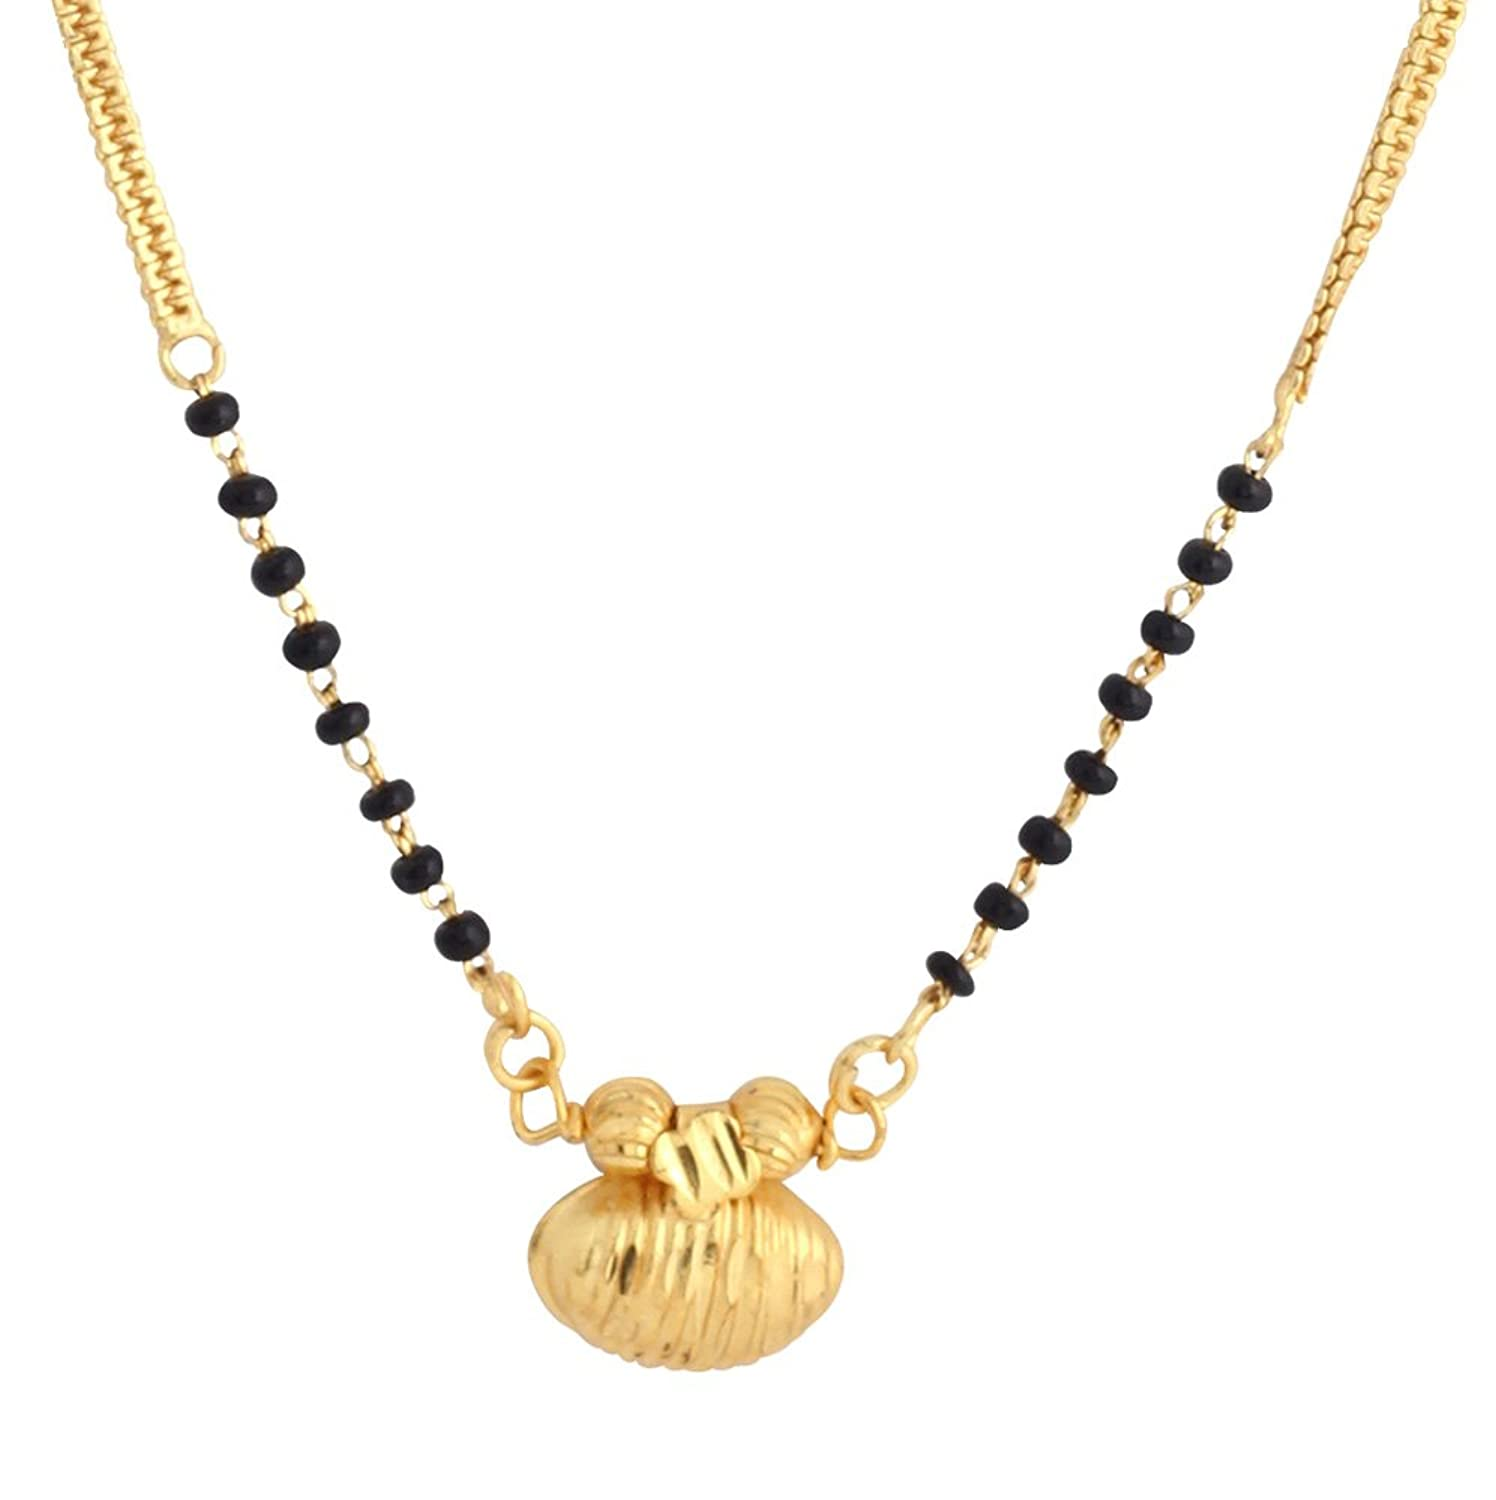 Mangal Sutra 23.5K Gold Plated ,Golden, 1 Piece Set